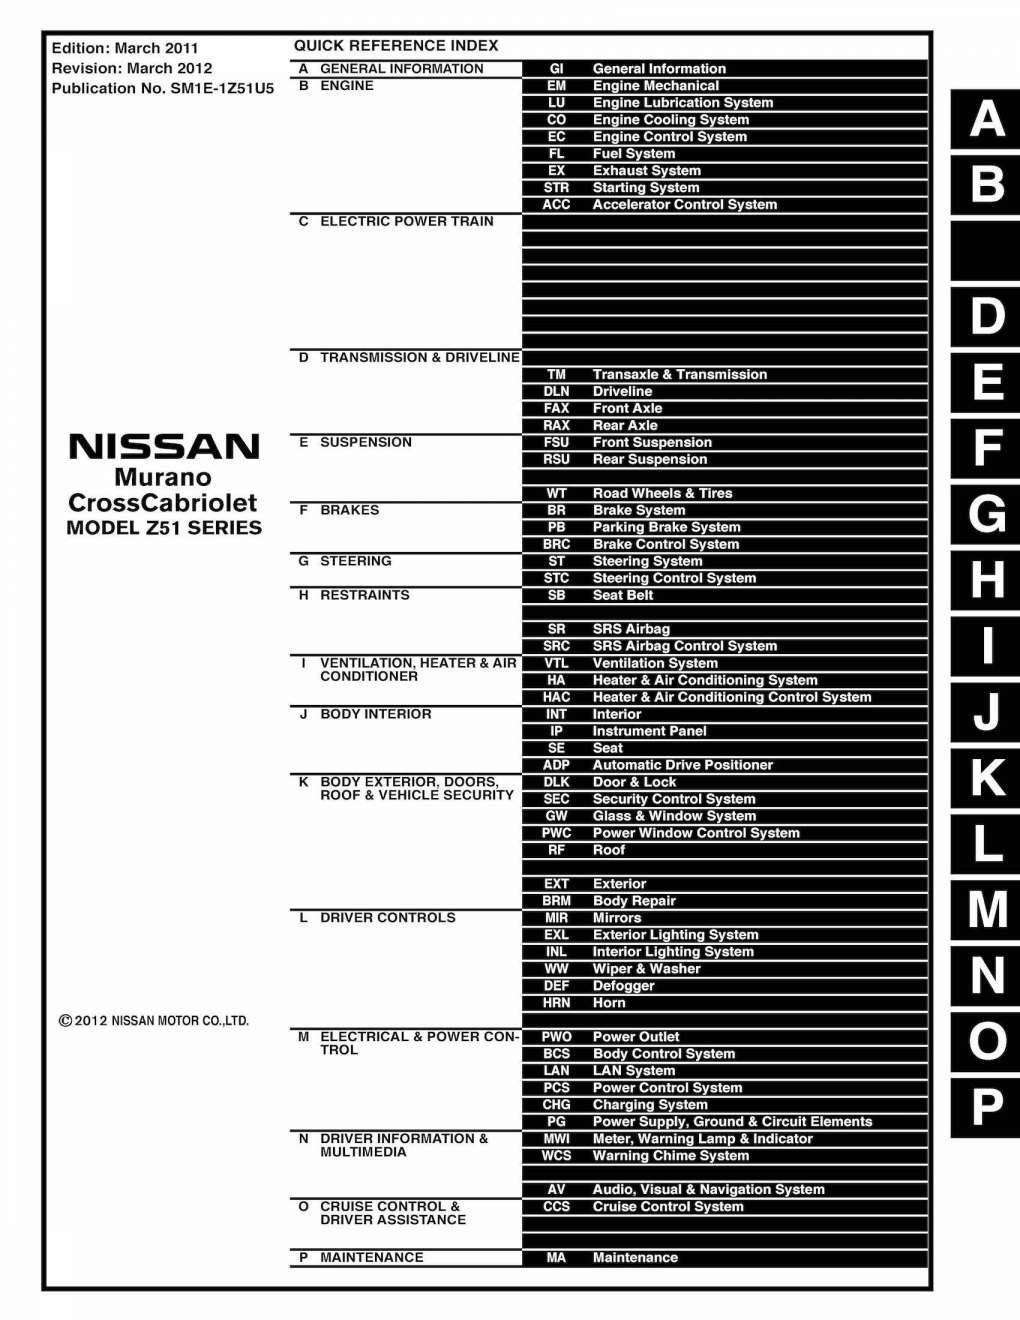 Nissan Murano Engine Wiring Diagram And